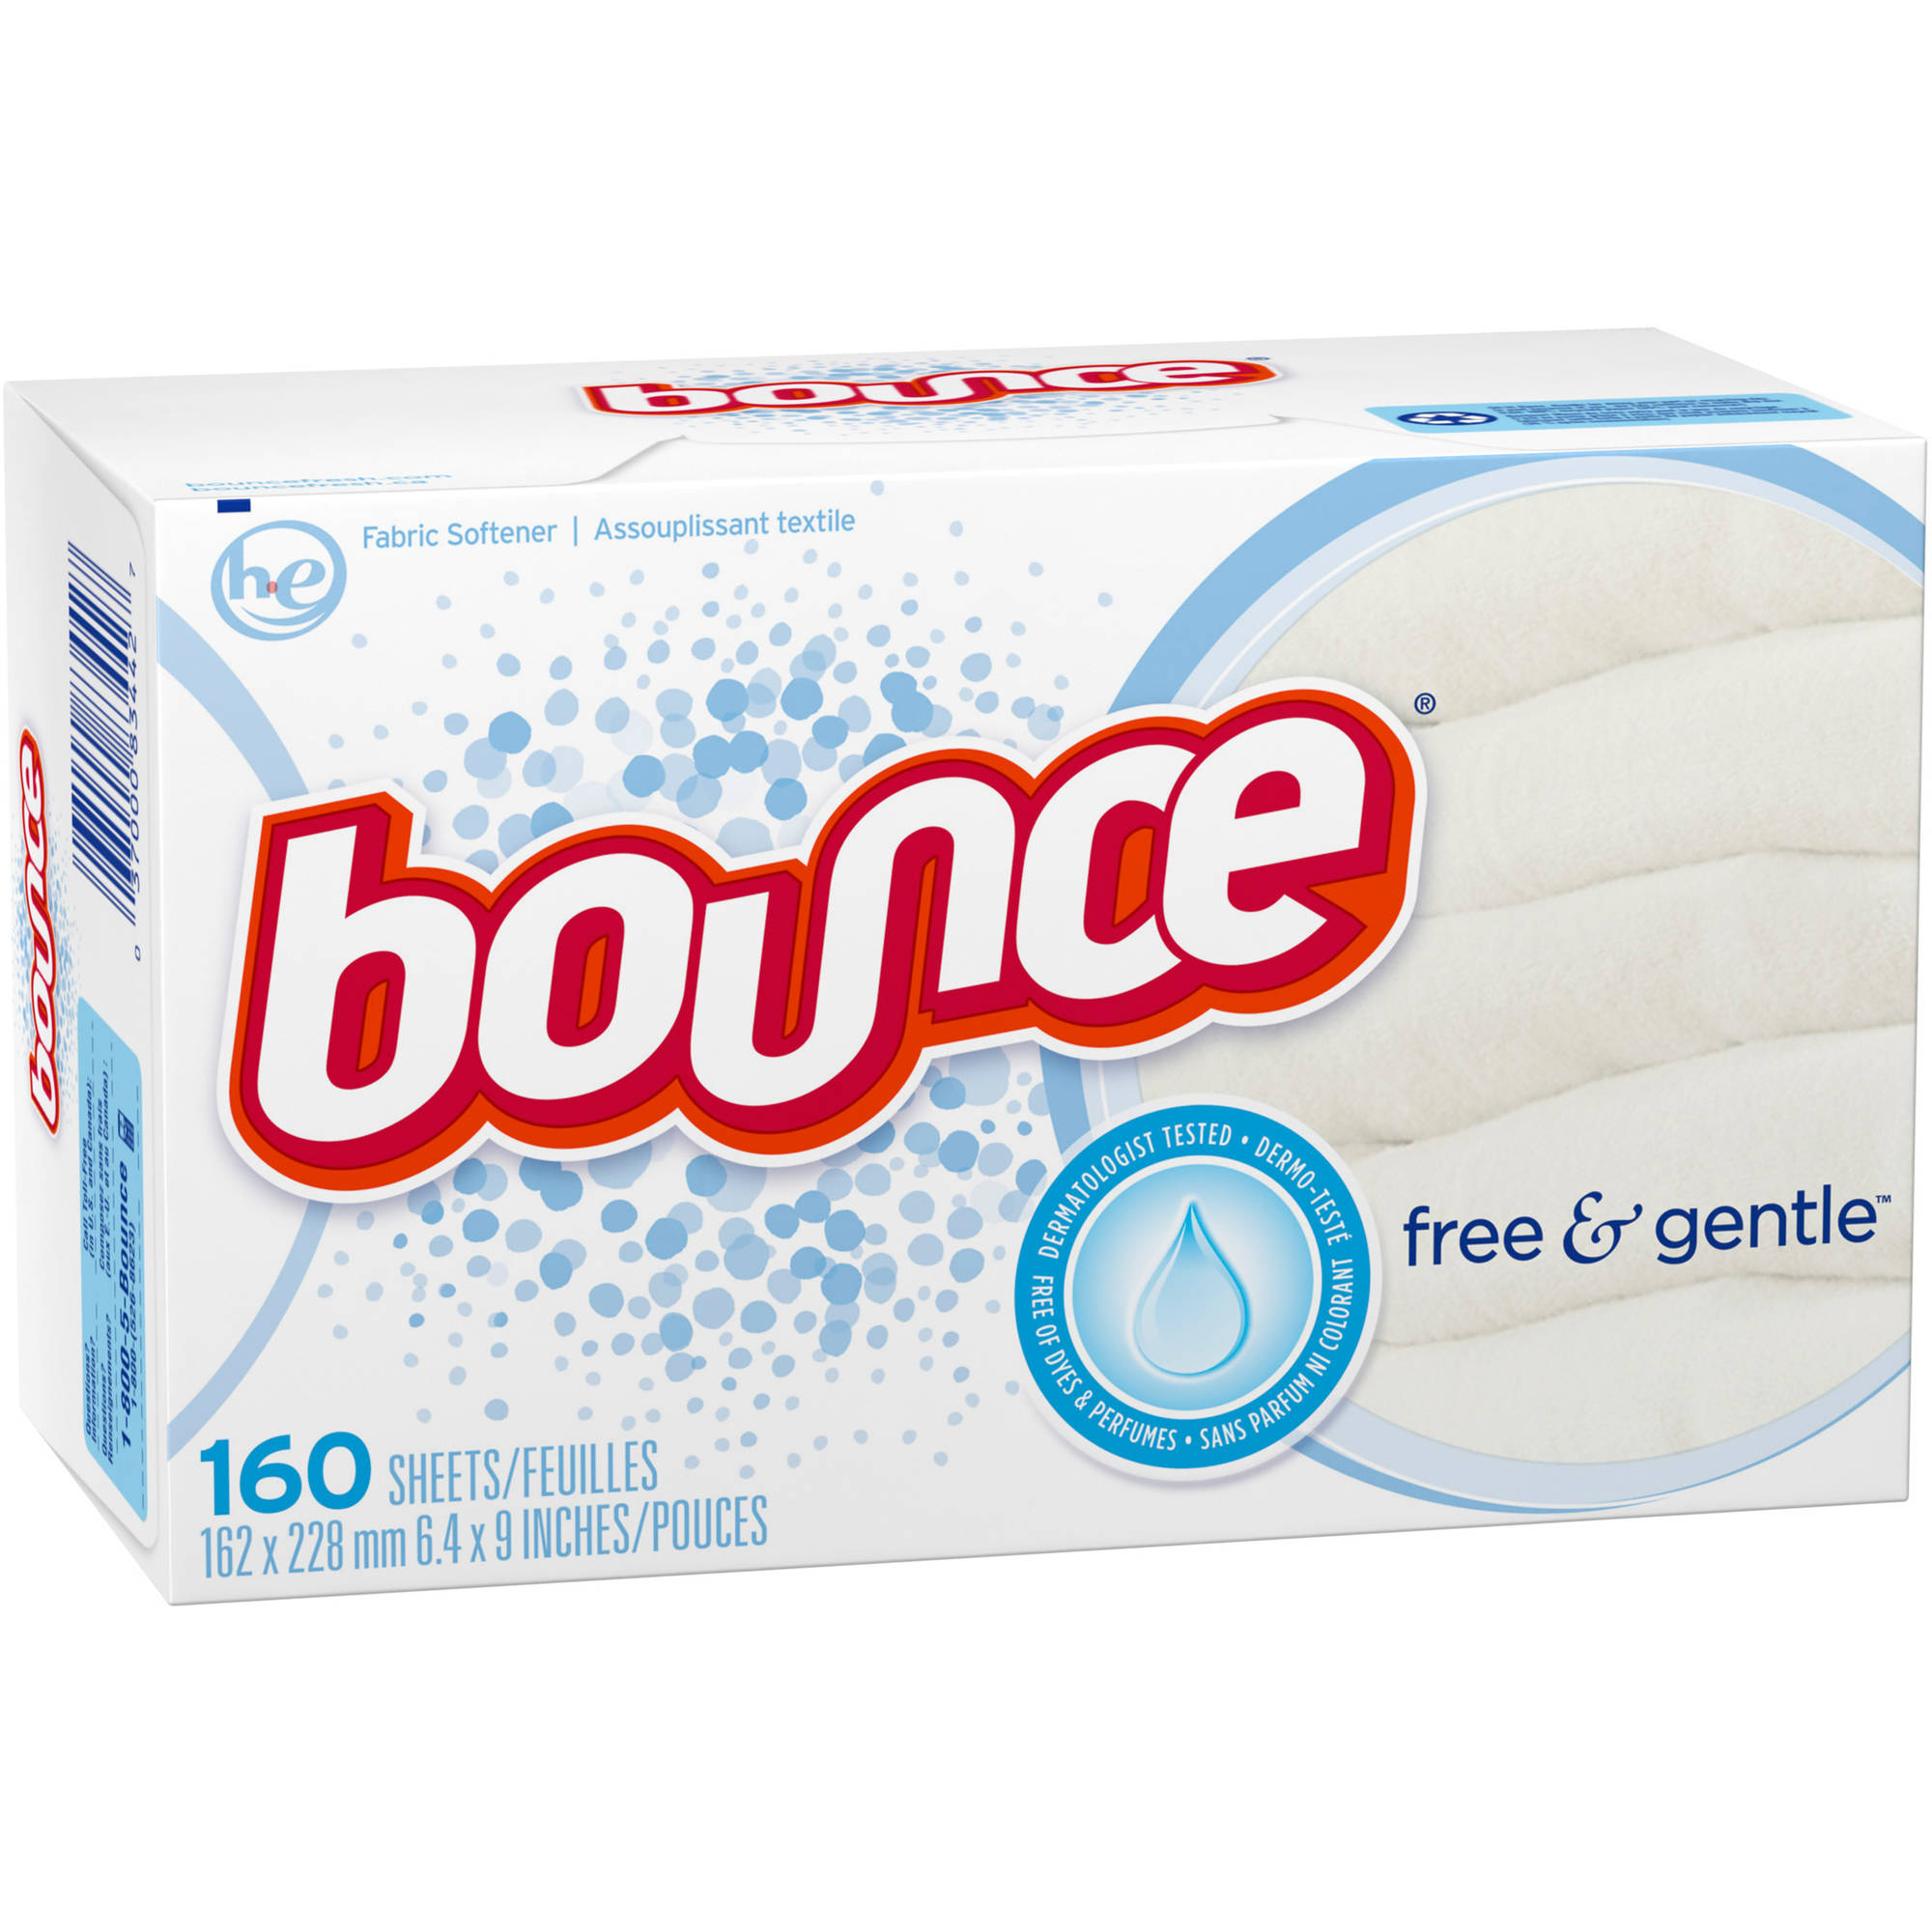 Bounce Free & Gentle Fabric Softener Dryer Sheets, 160 count